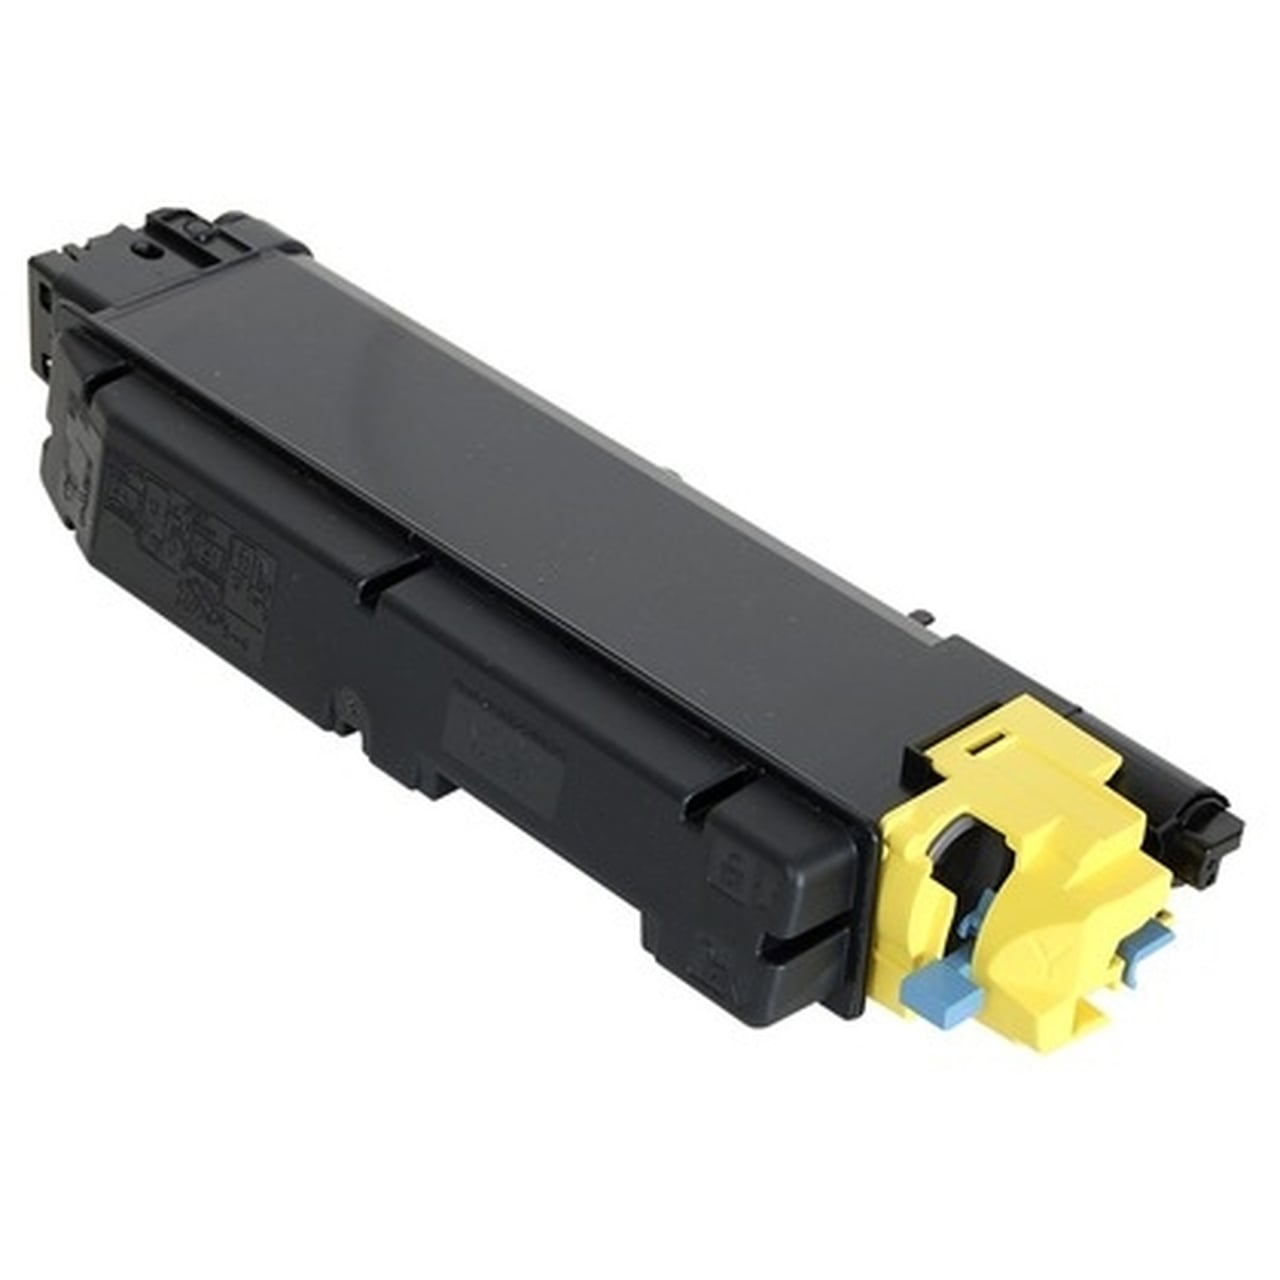 TK-5272Y Toner Cartridge - Kyocera Mita Compatible (Yellow)